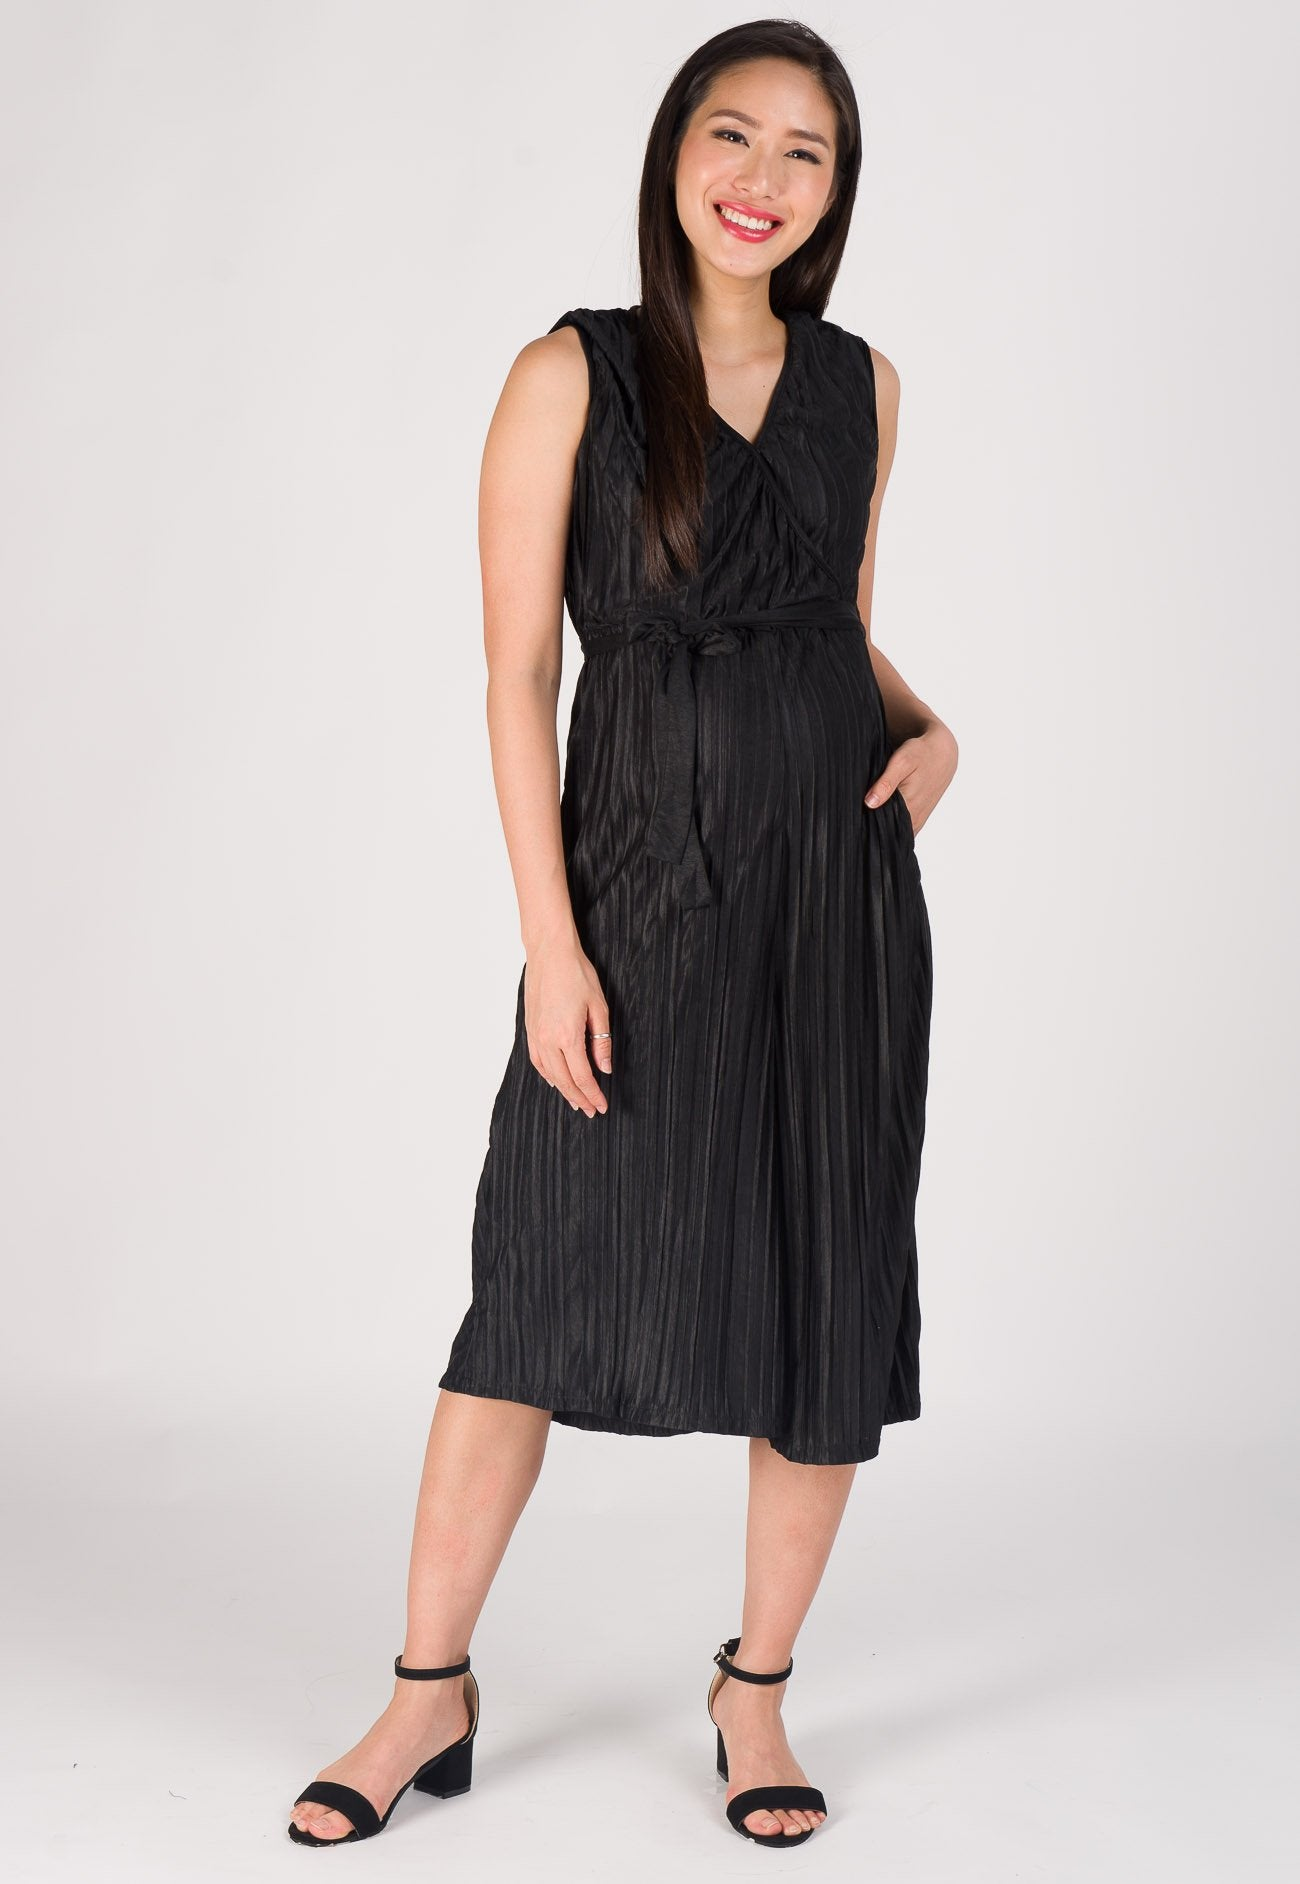 Sleek Wrapped Pleated Nursing Jumpsuit in Black  by Jump Eat Cry - Maternity and nursing wear